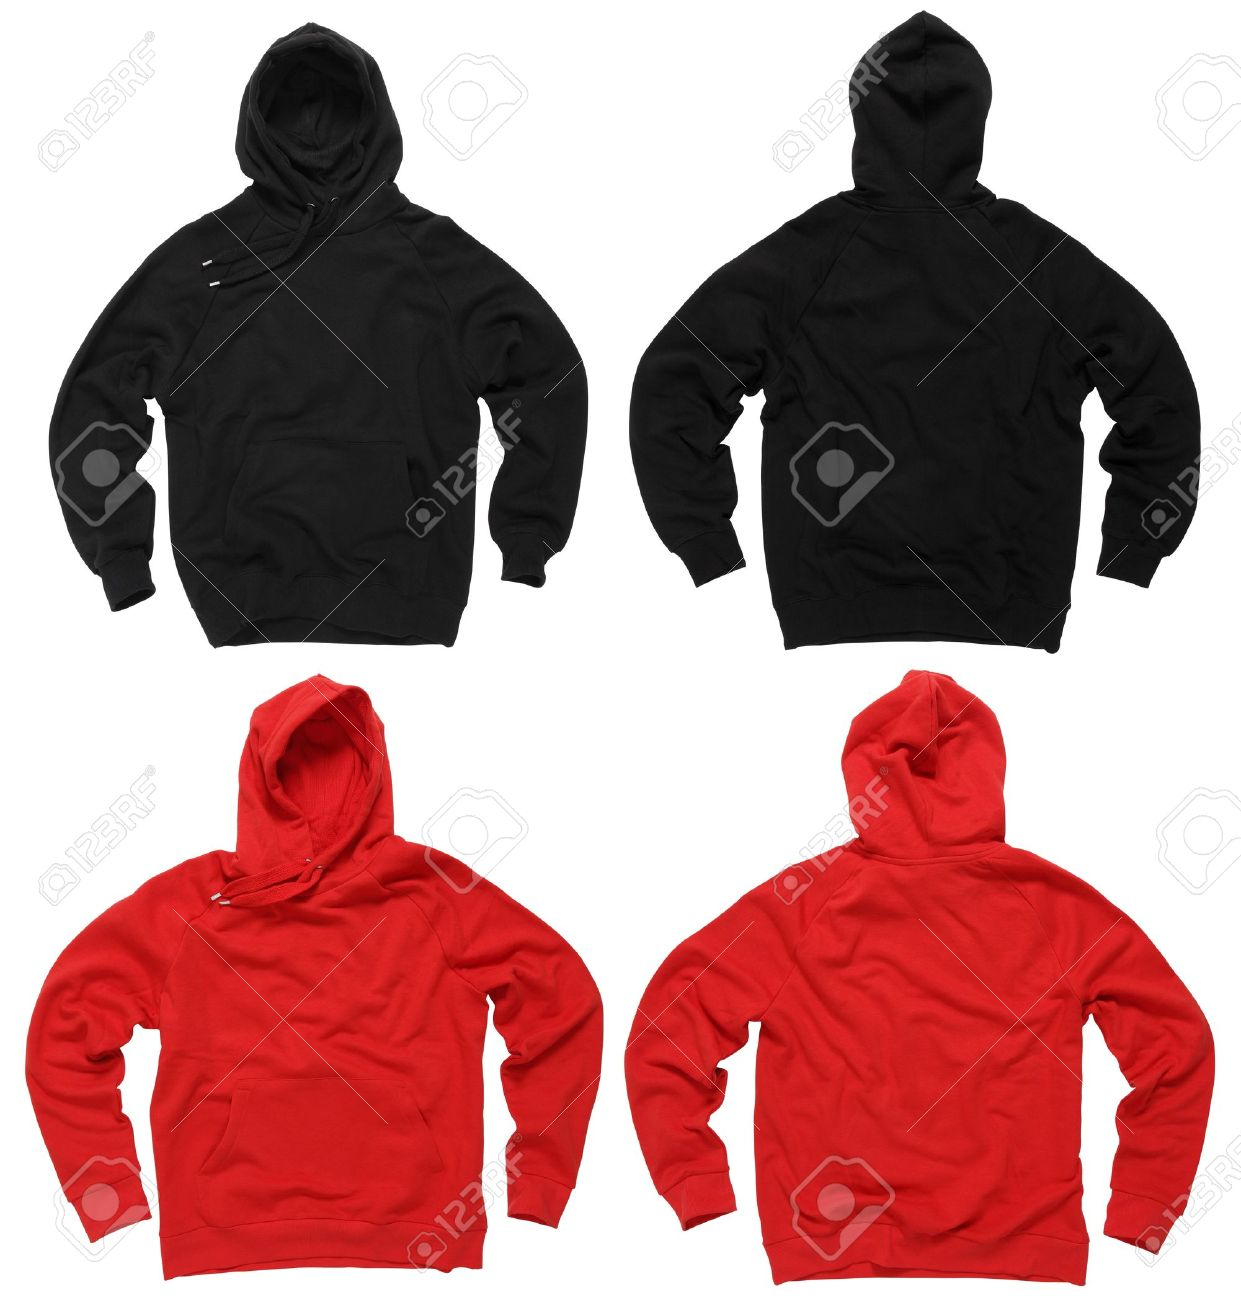 Photograph of two blank hoodie sweatshirts, red and black, front and back.  Clipping paths included.  Ready for your design or artwork. Stock Photo - 10862600